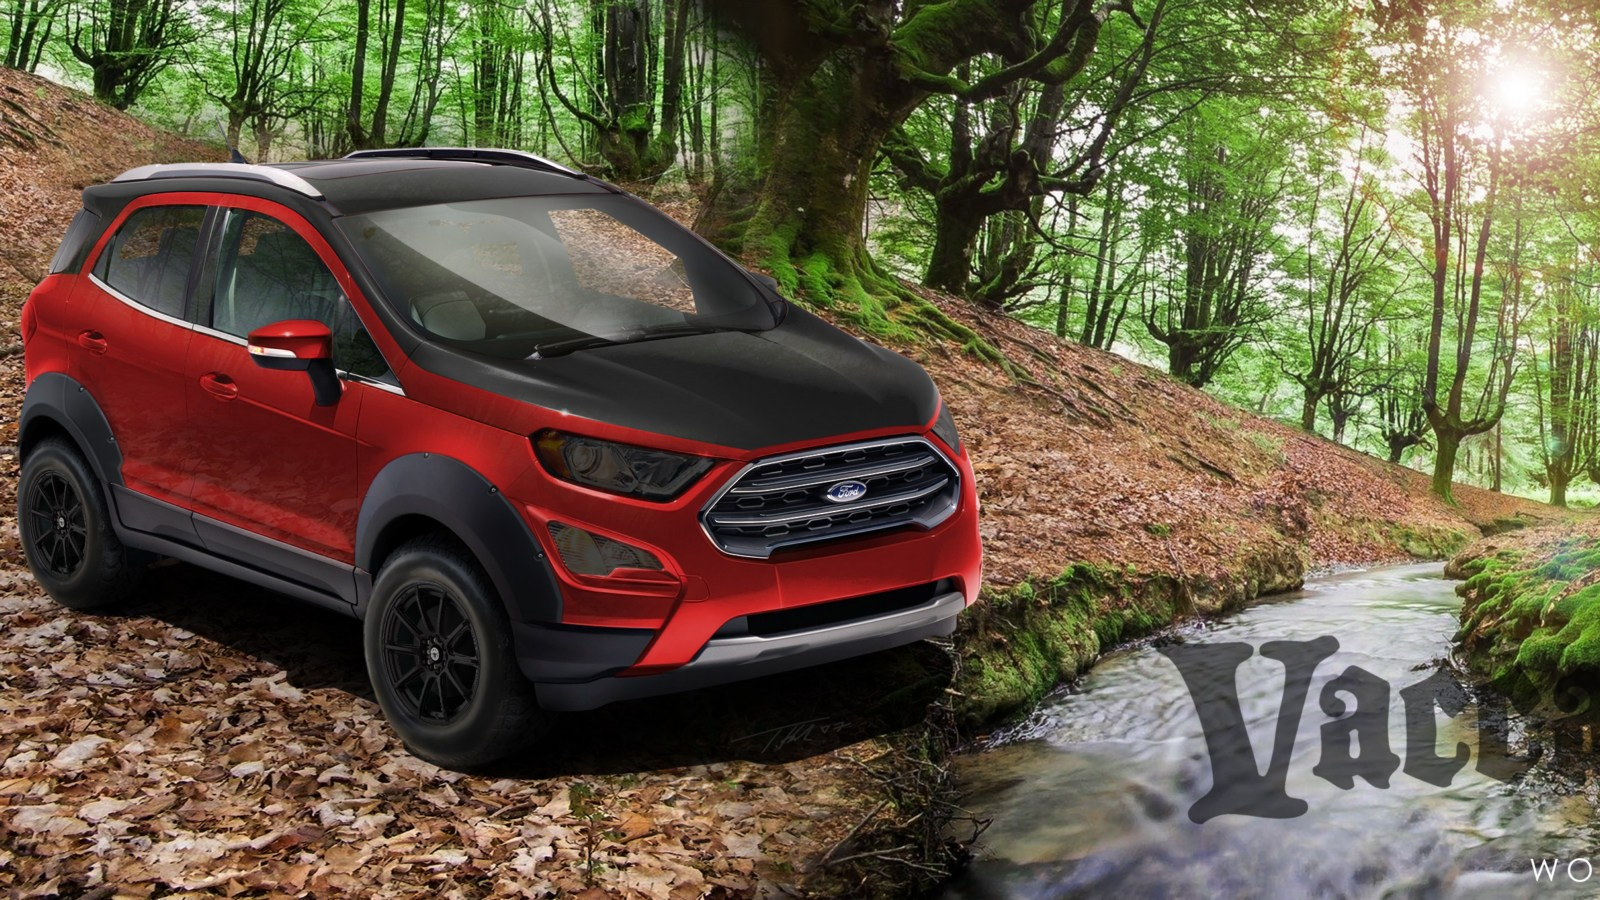 2018 Ford EcoSport Titanium created by Vaccar